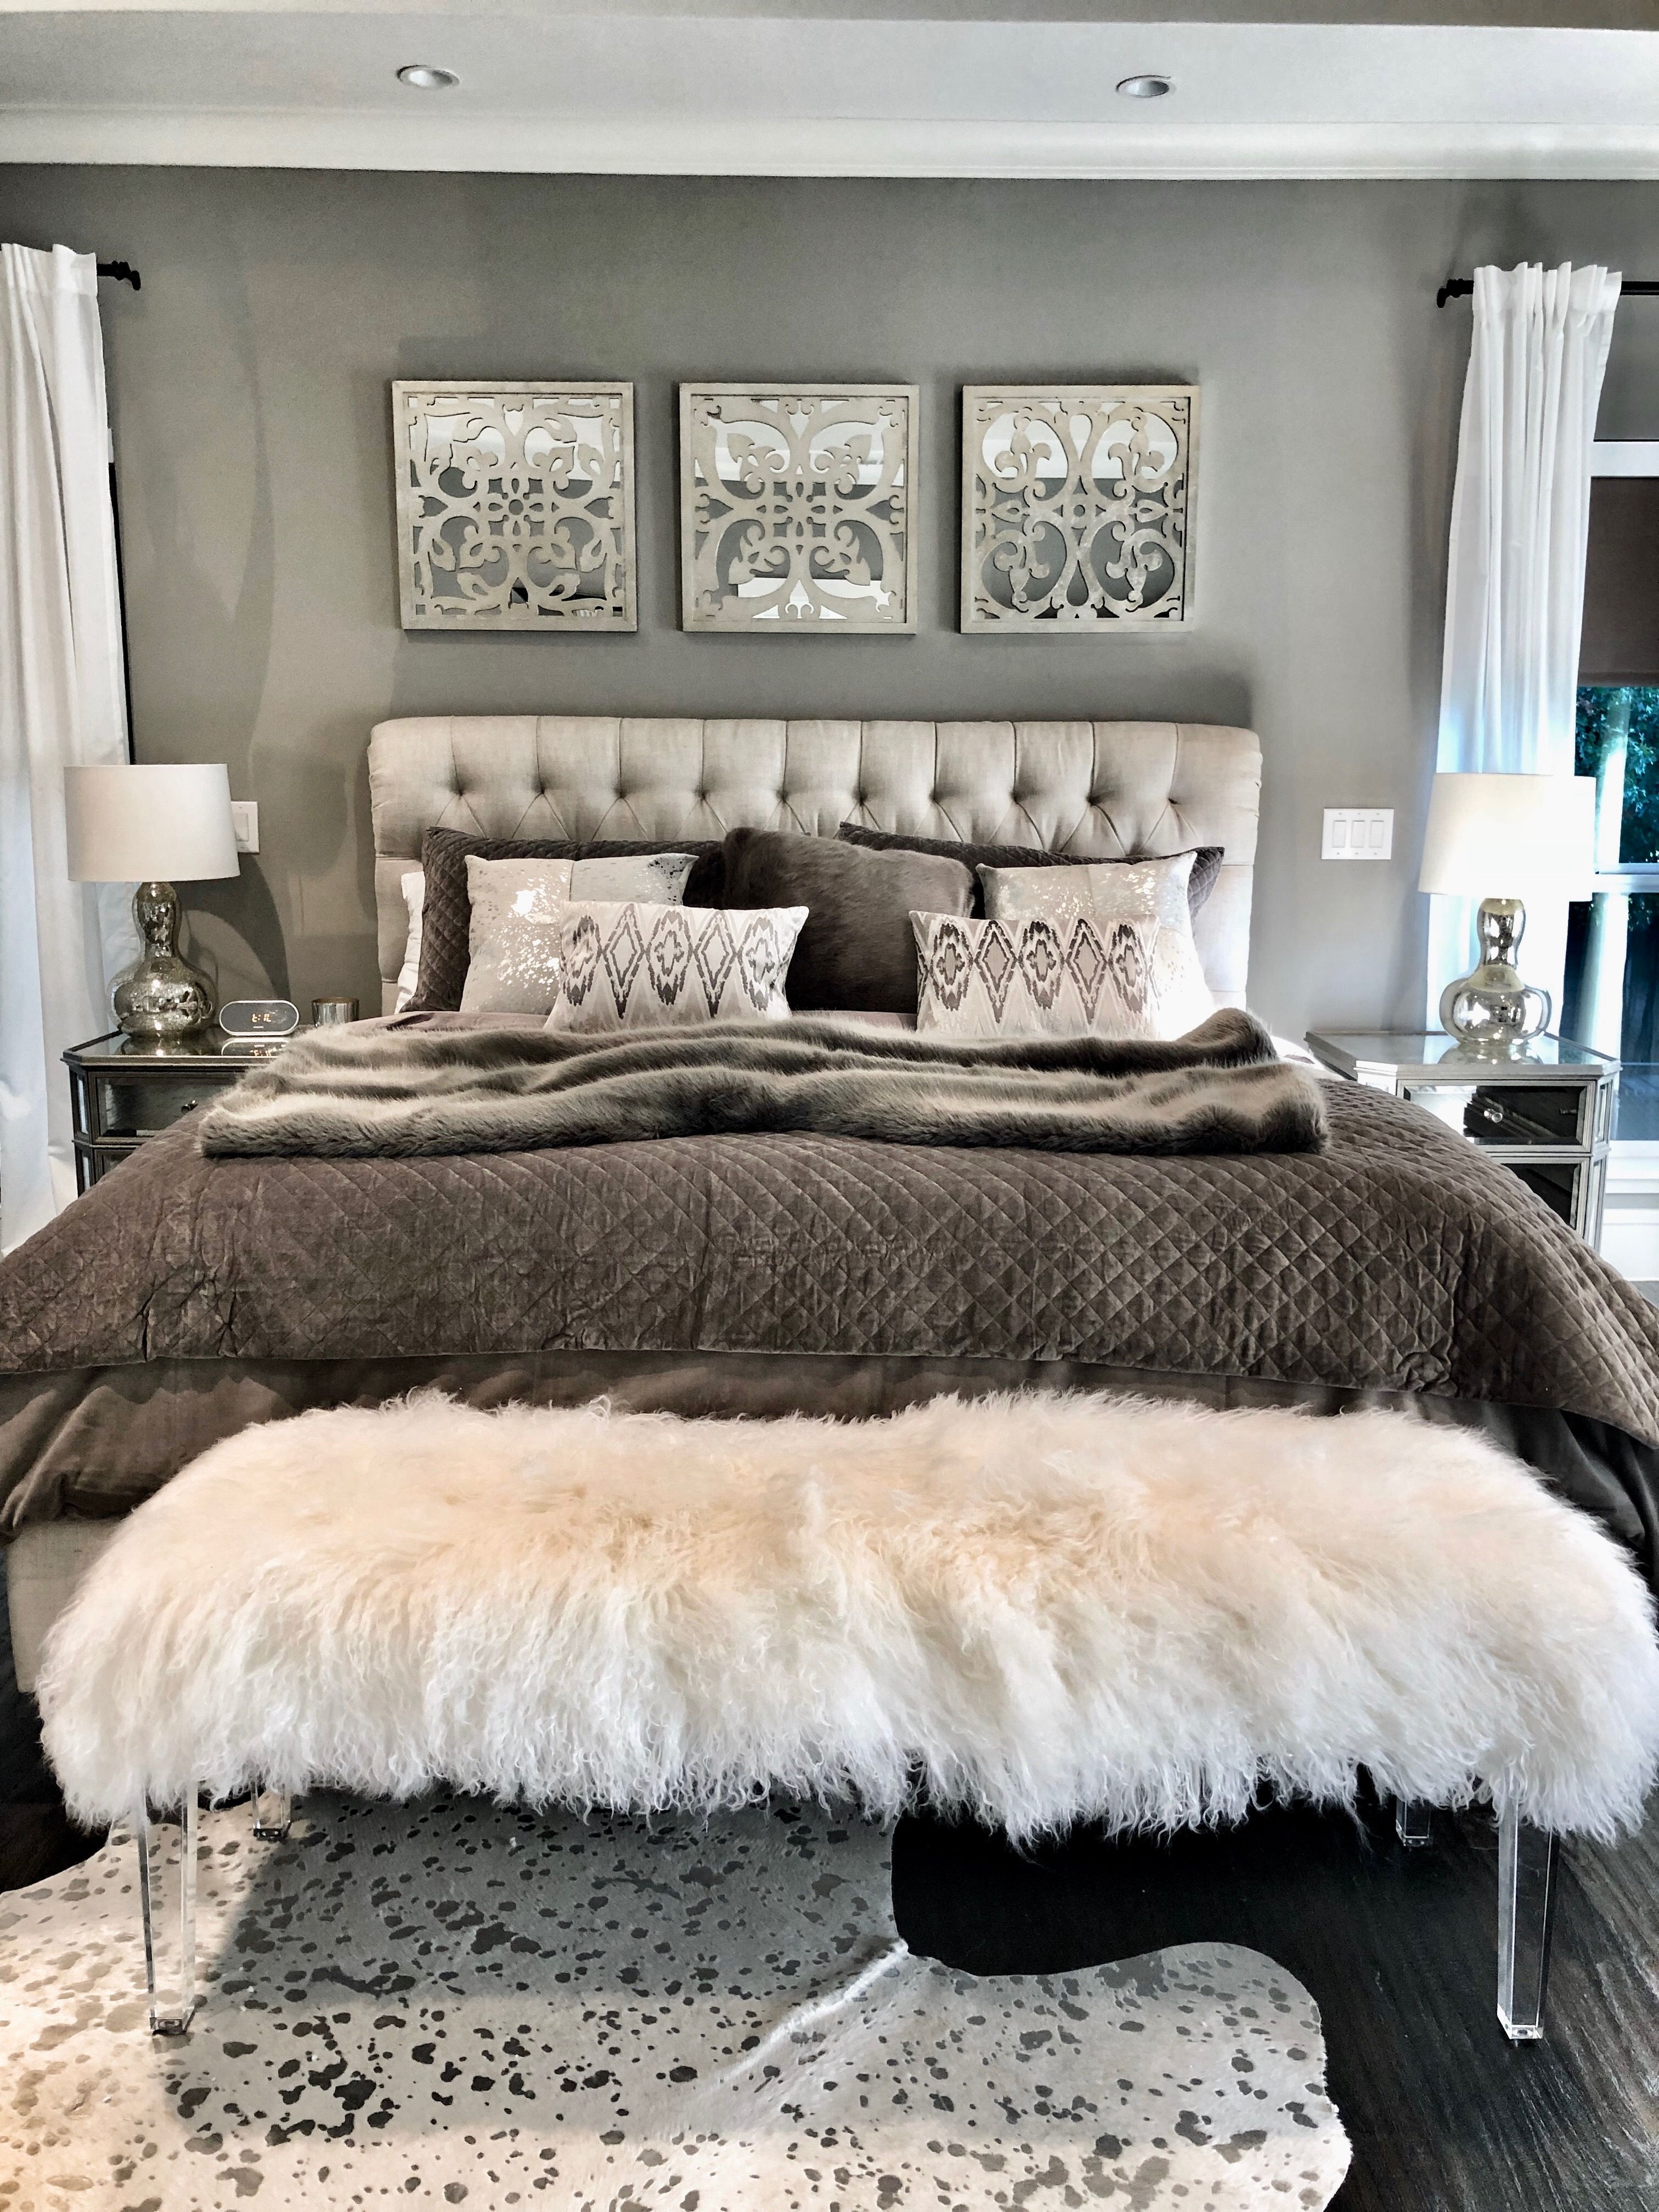 Best In Love With My Grey Master Bedroom Aesthetic The Tufted 640 x 480